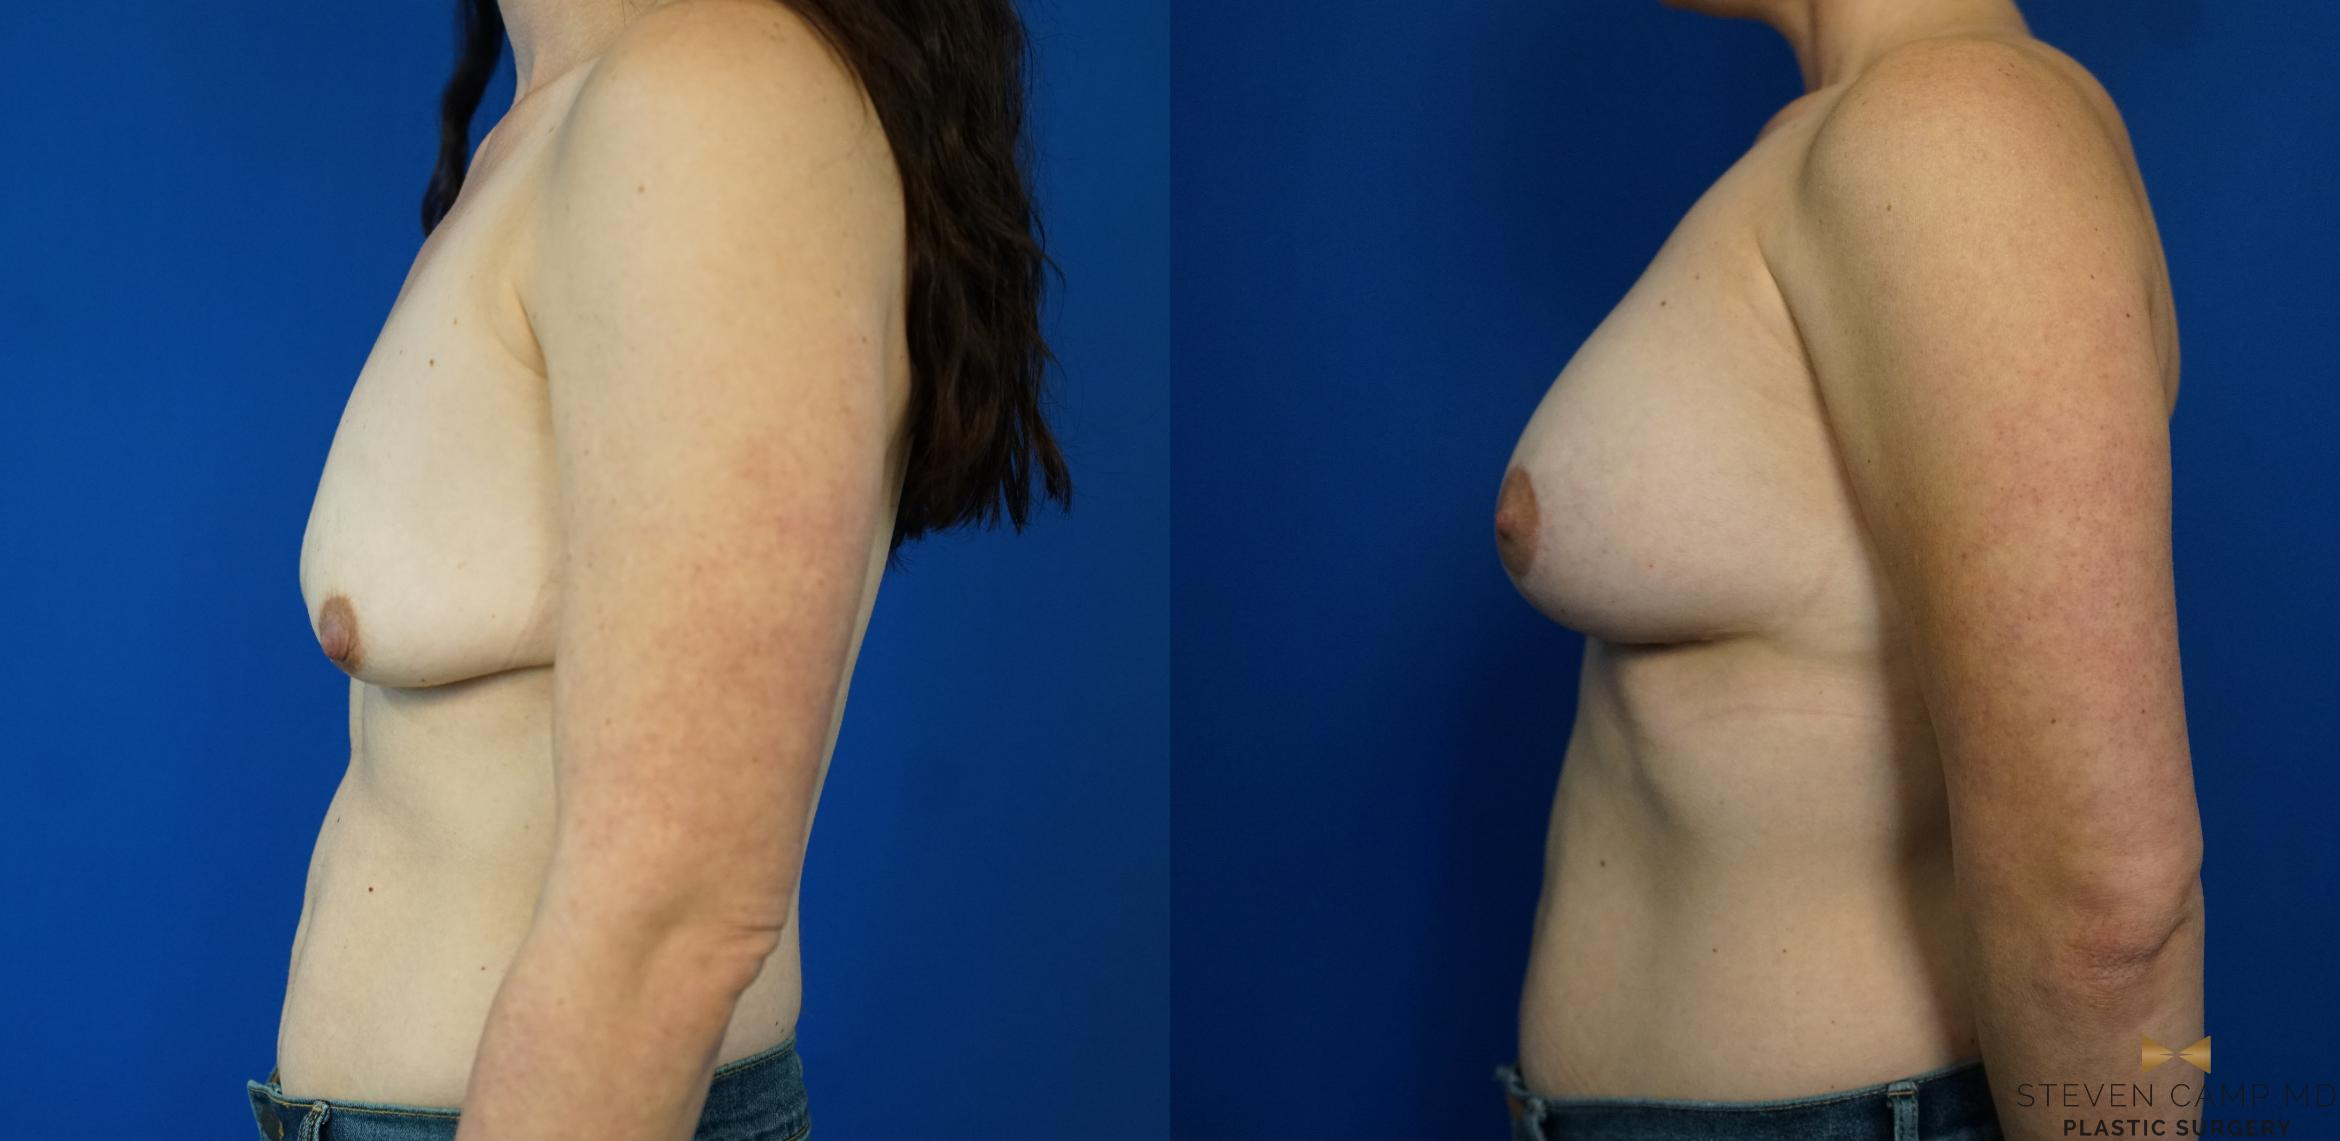 Breast Lift Before & After Photo | Fort Worth, Texas | Steven Camp MD Plastic Surgery